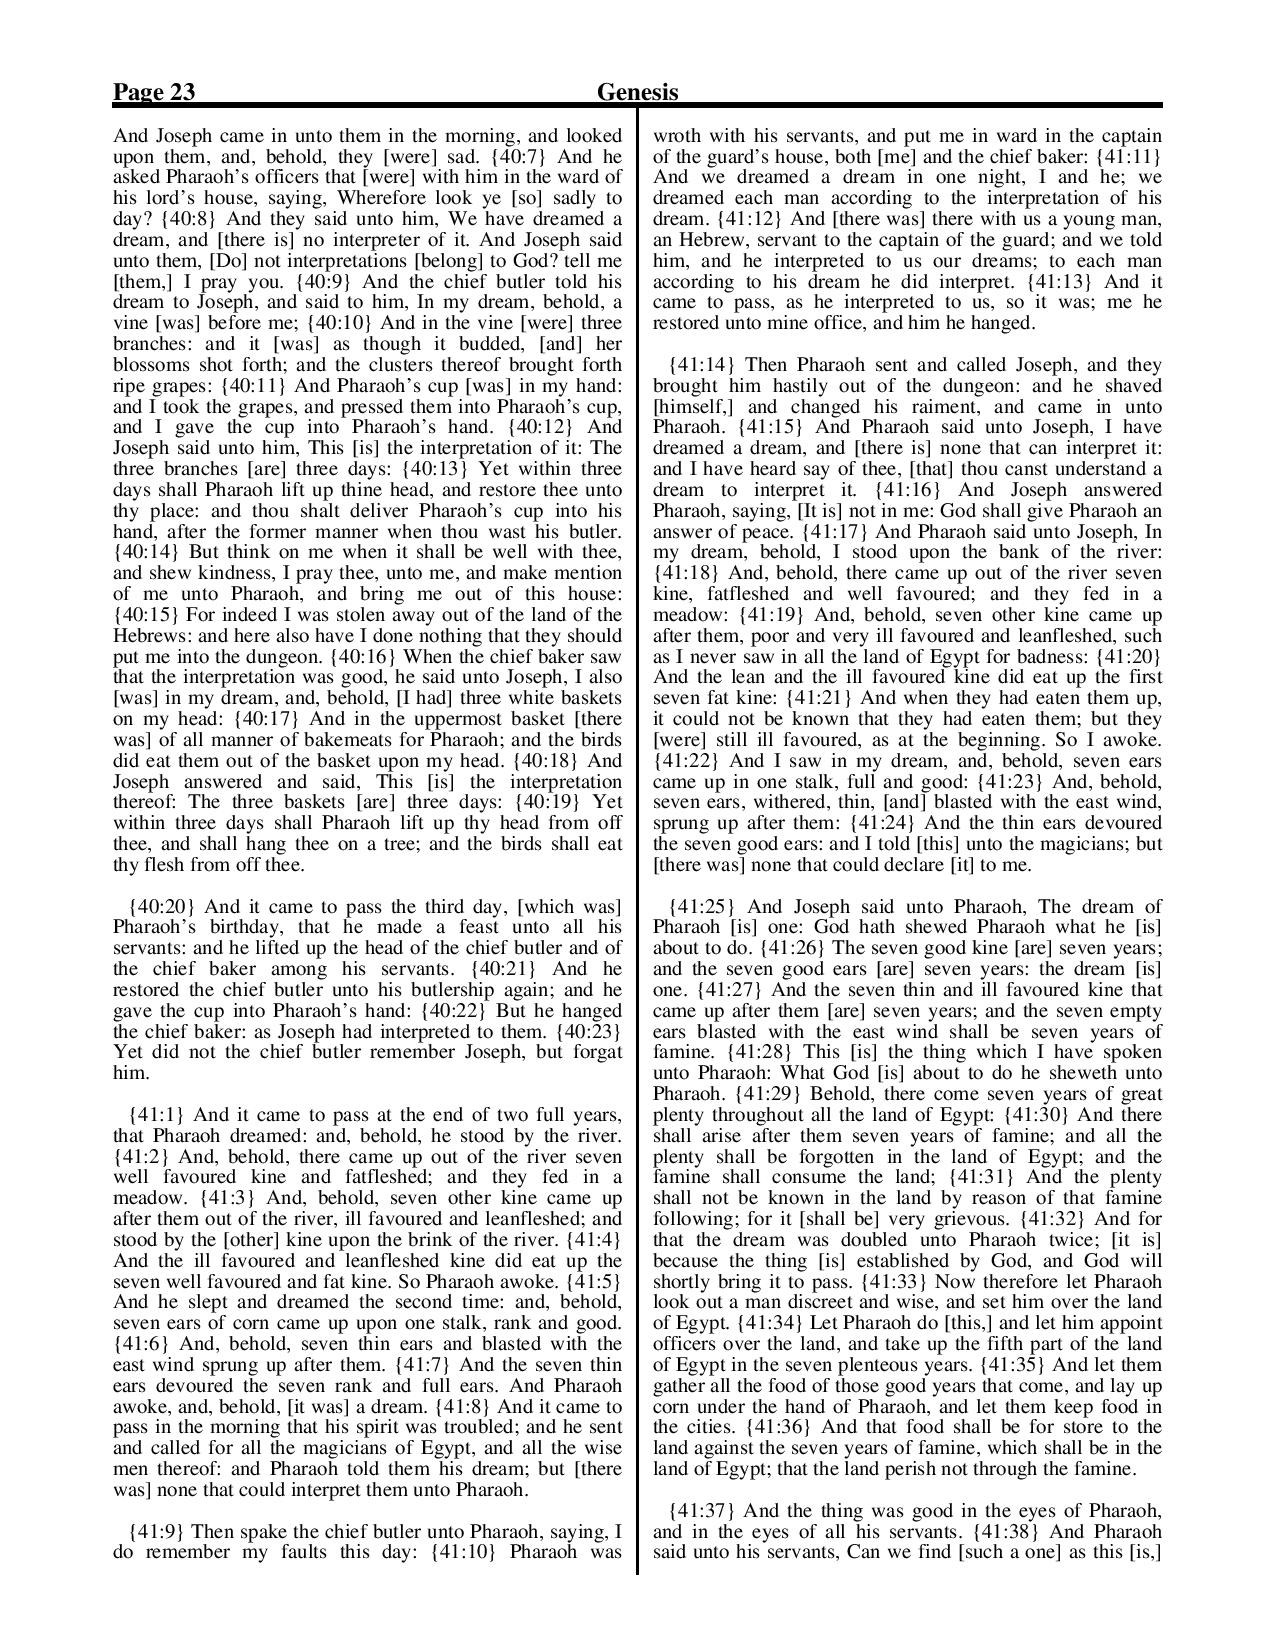 King-James-Bible-KJV-Bible-PDF-page-044